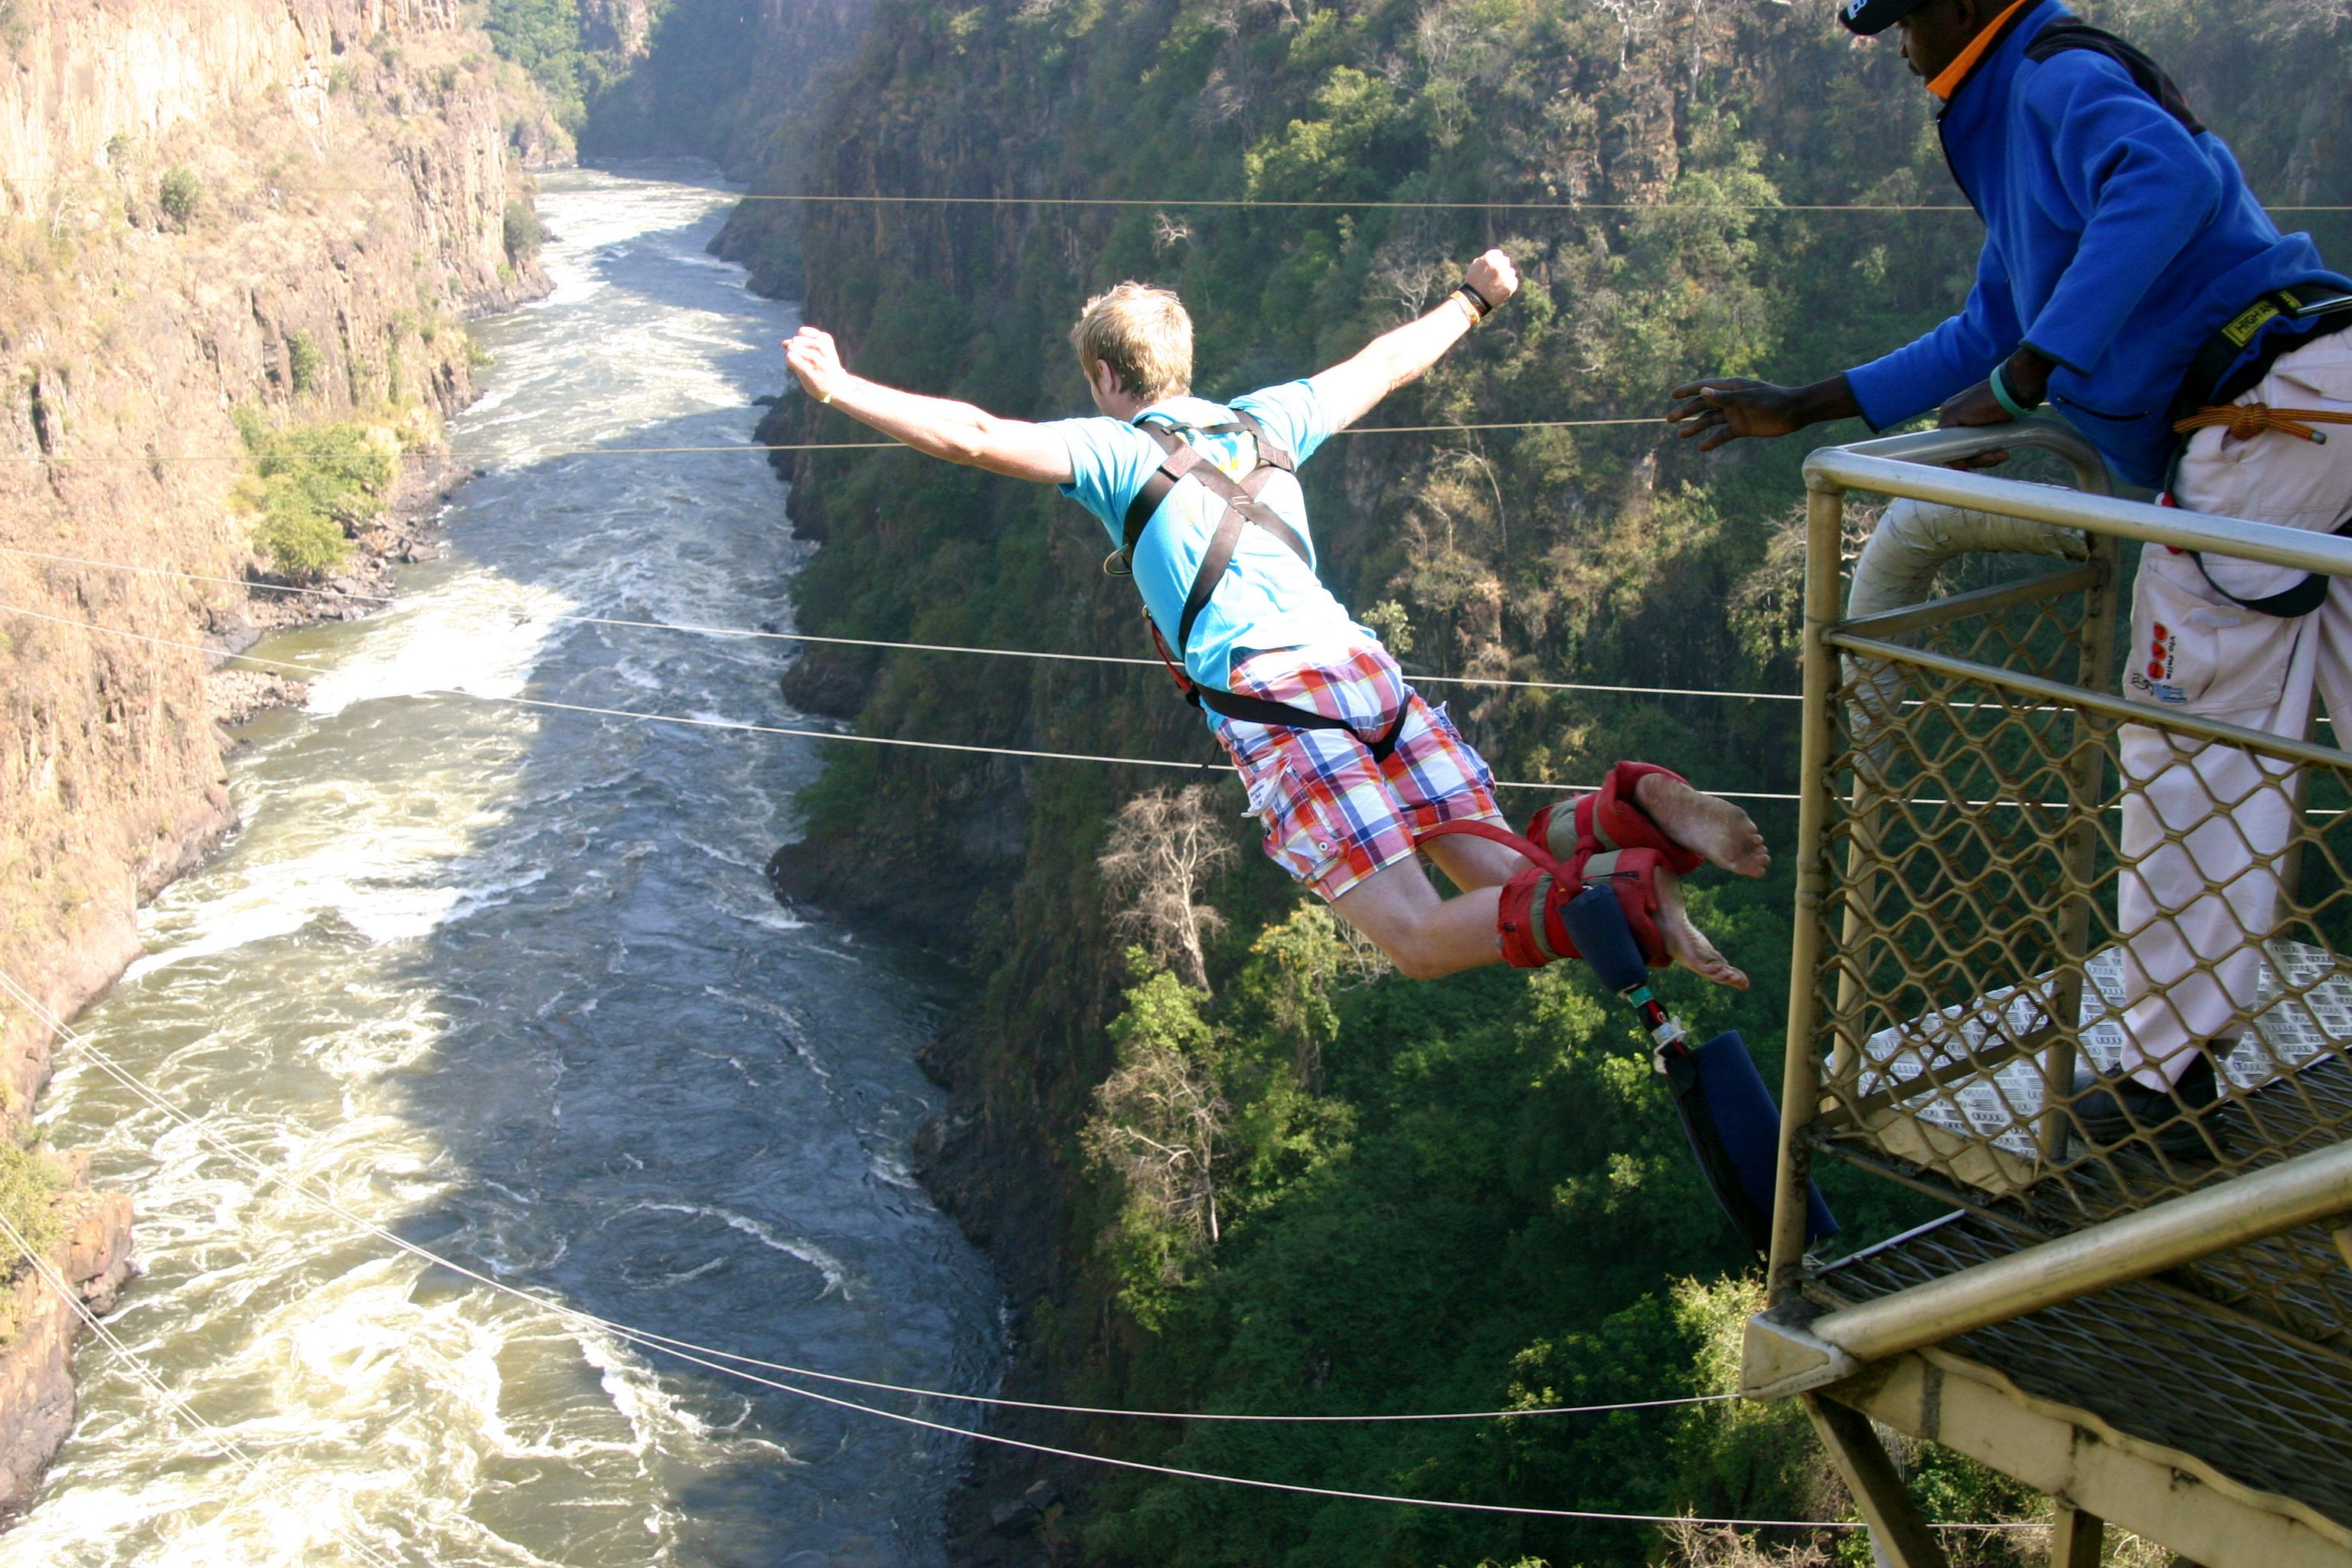 Rsi bungee jumping strategy